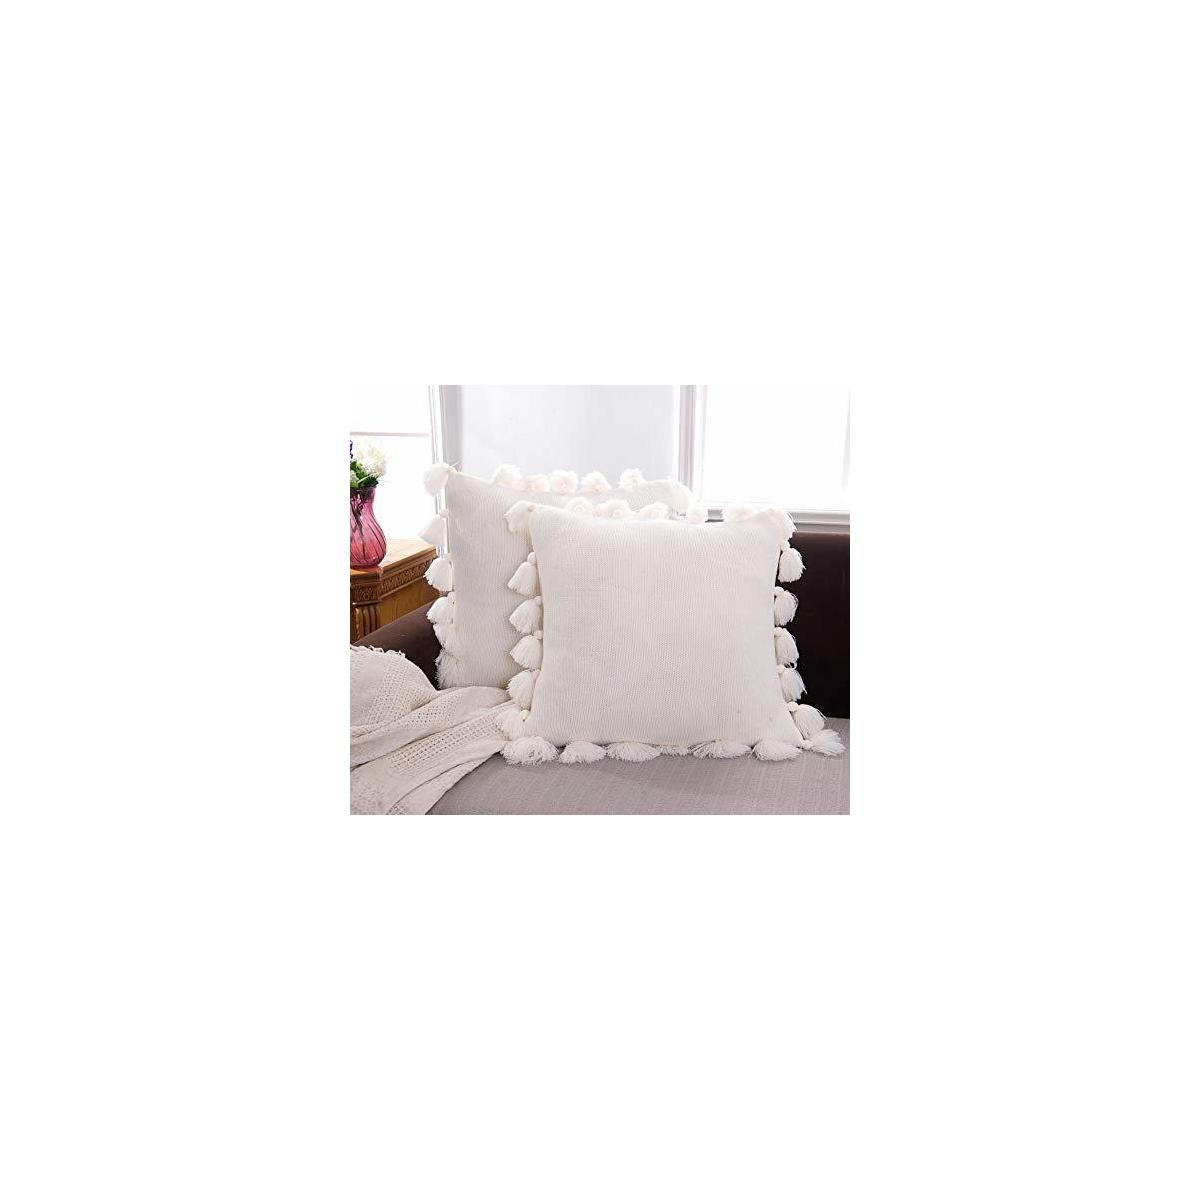 Blackbunny Square Cream Decorative Throw Pillow Cover Woven Accent Boho Rebates Rebatekey